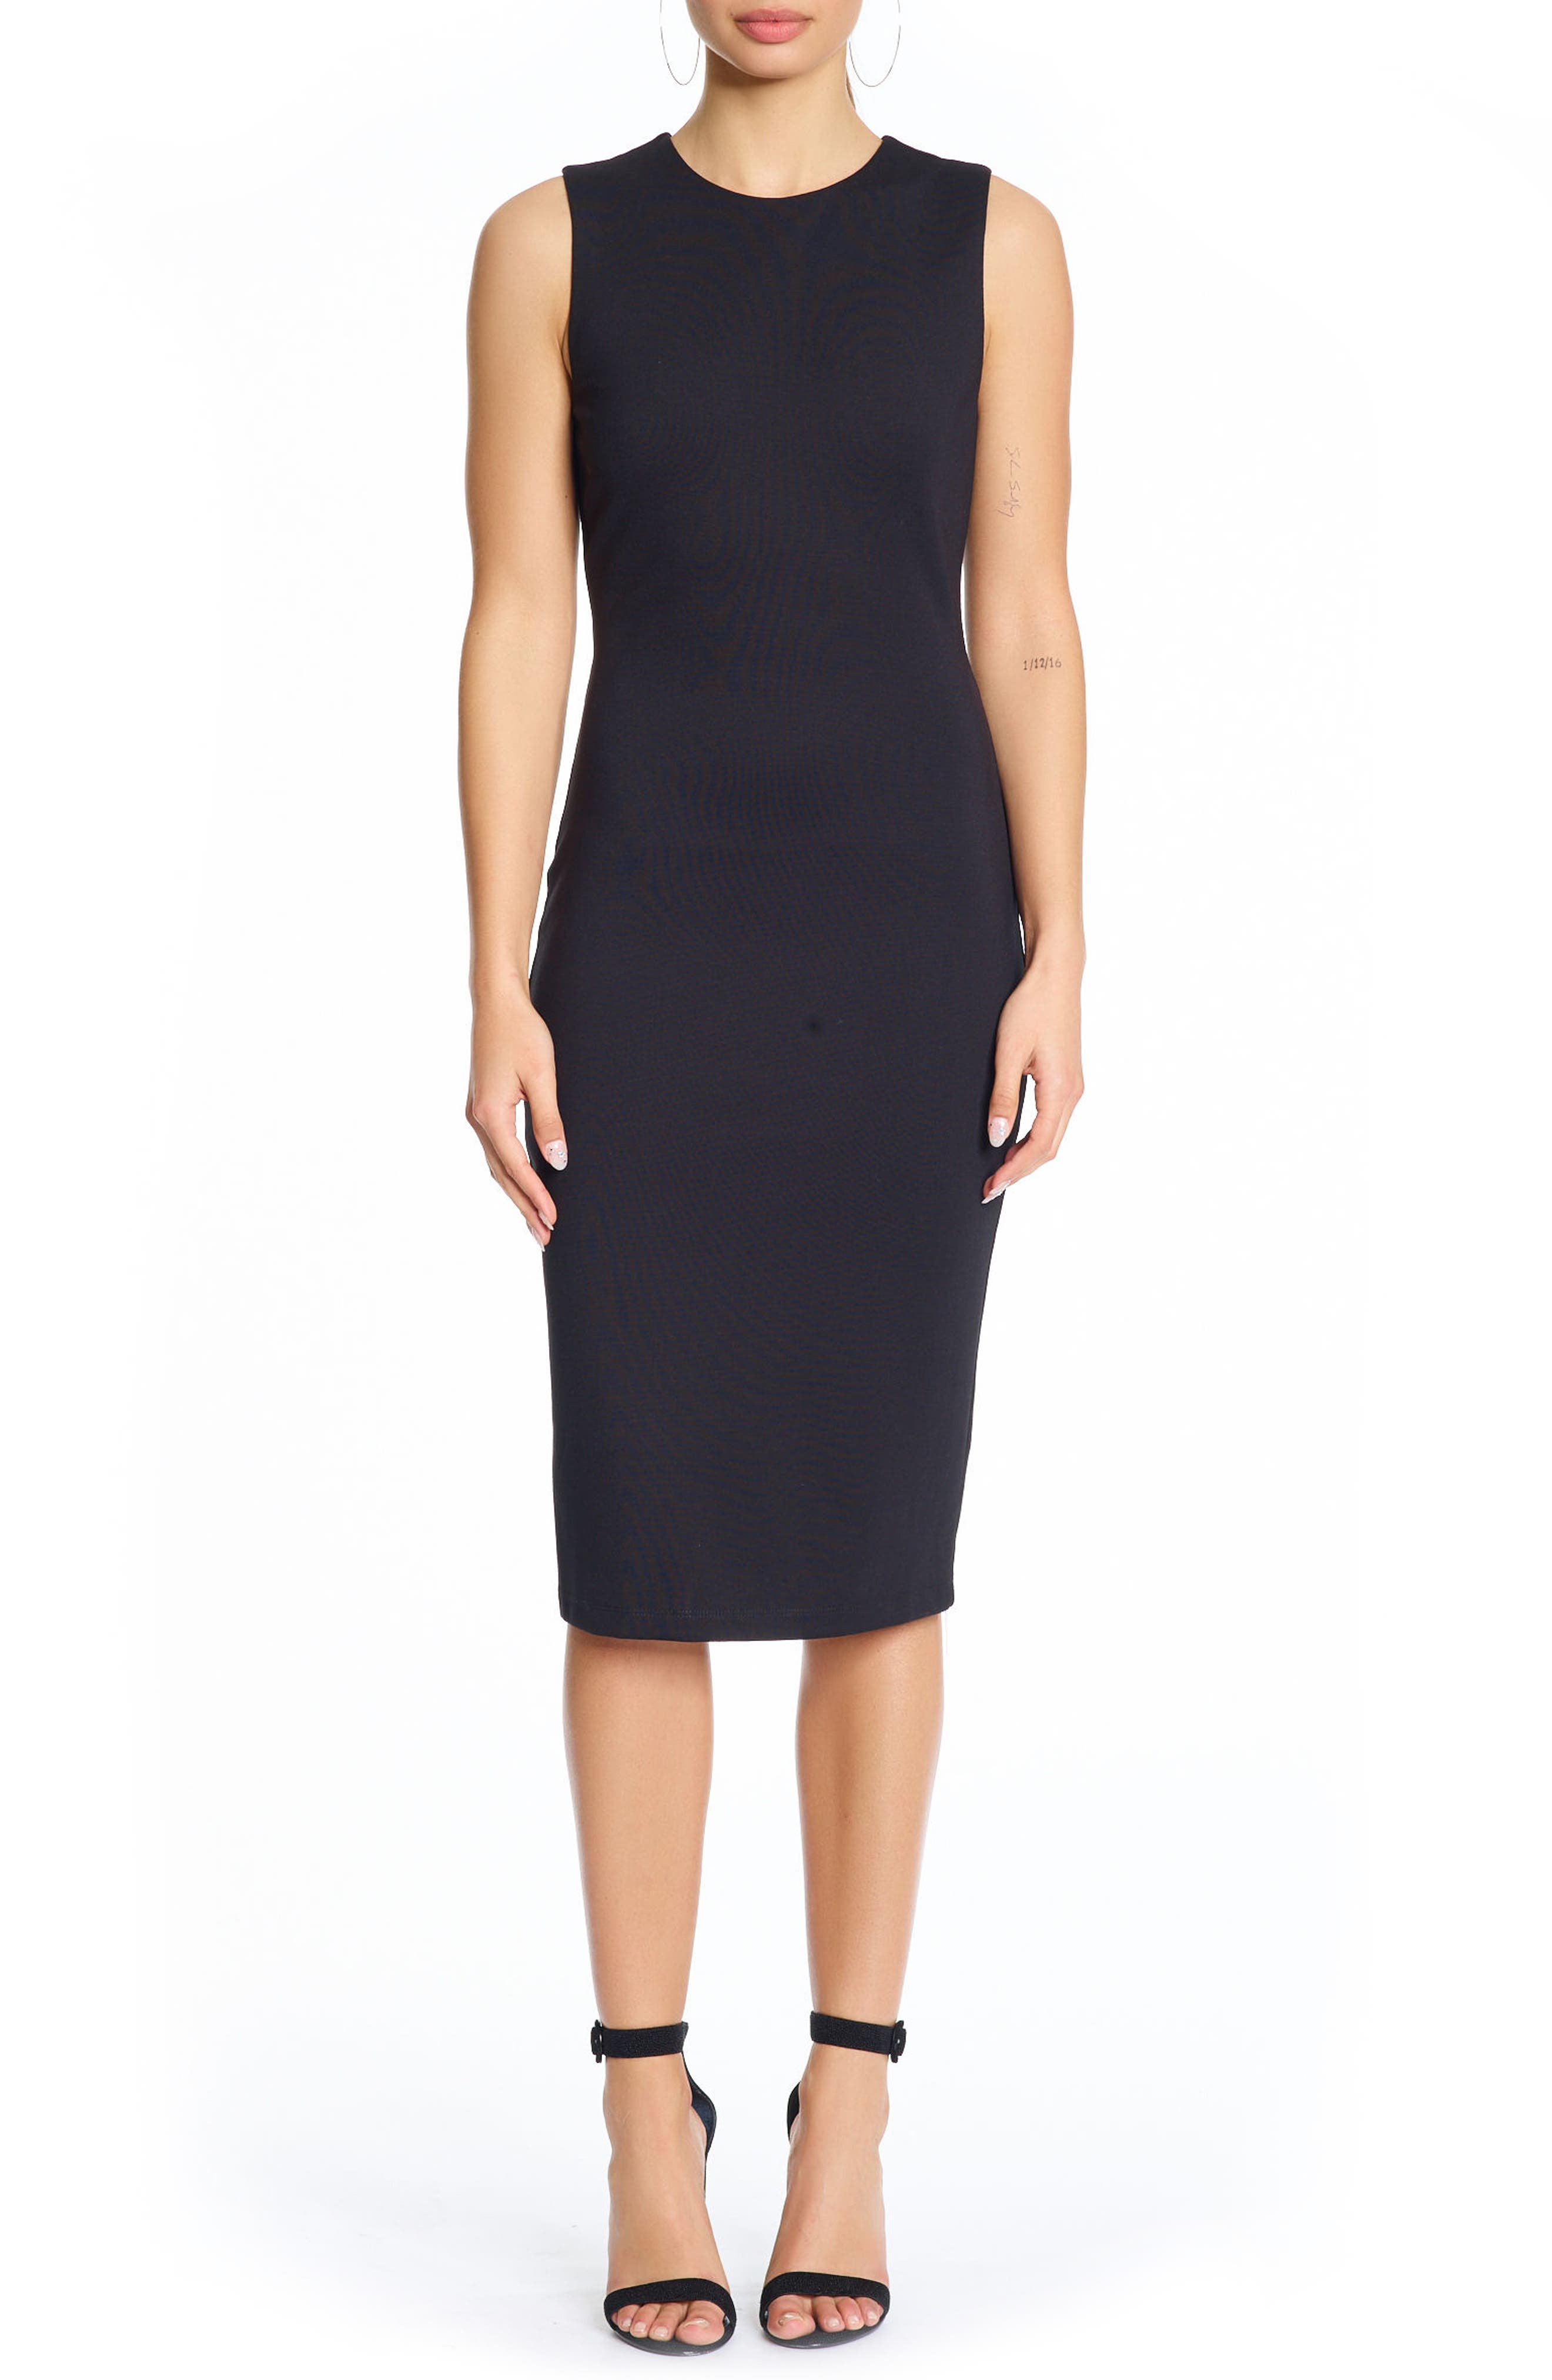 Alternate Image 1 Selected - KENDALL + KYLIE Cutout Body-Con Dress